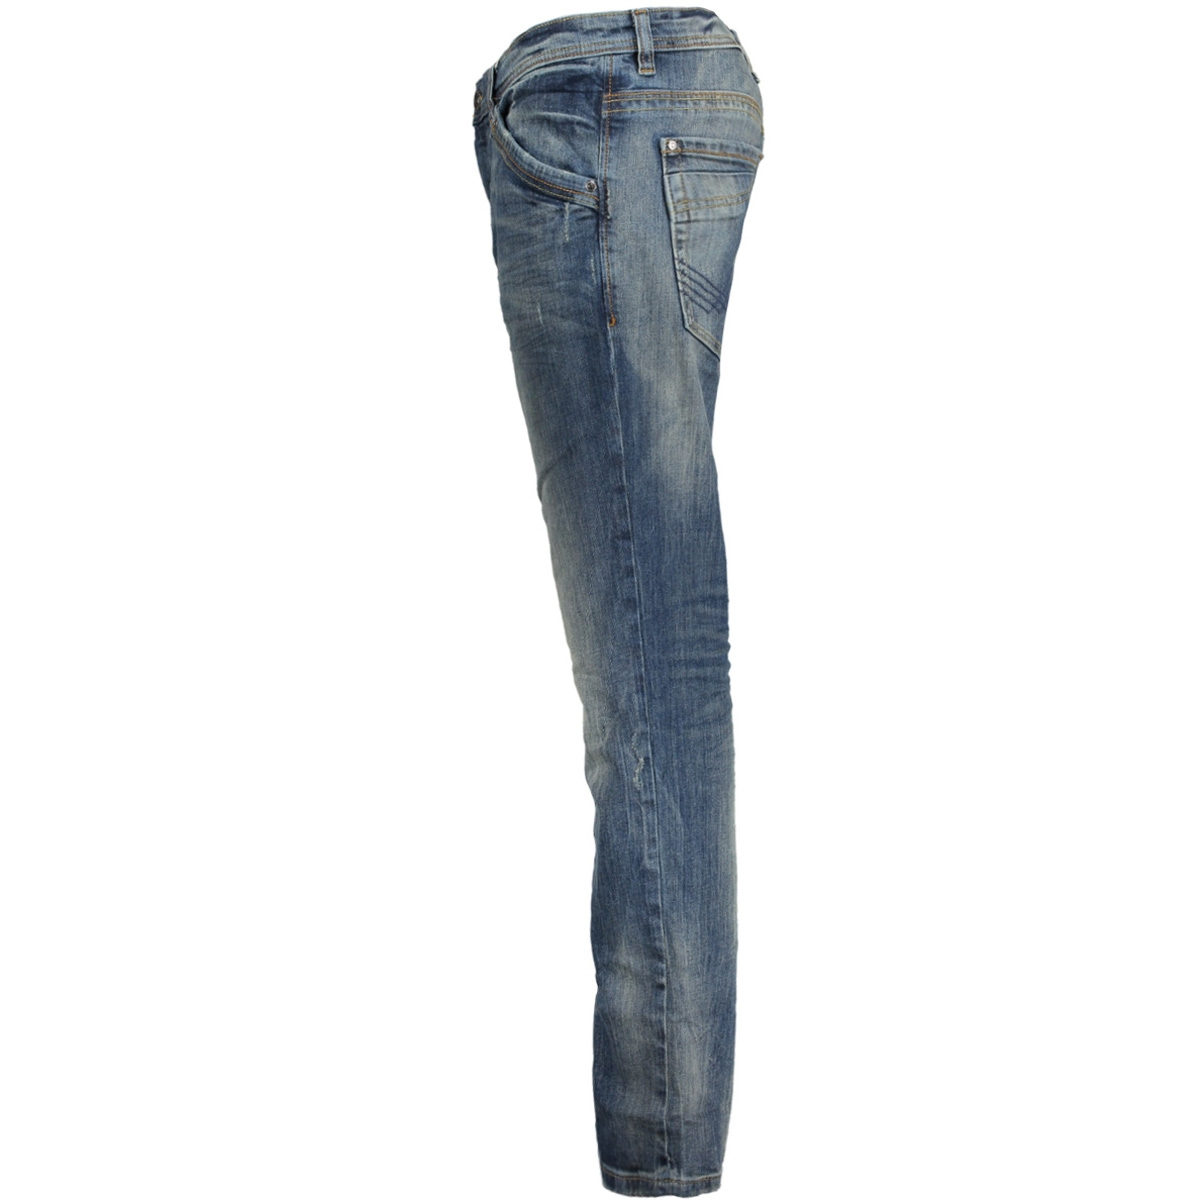 6205861.00.10 tom tailor jeans 1195